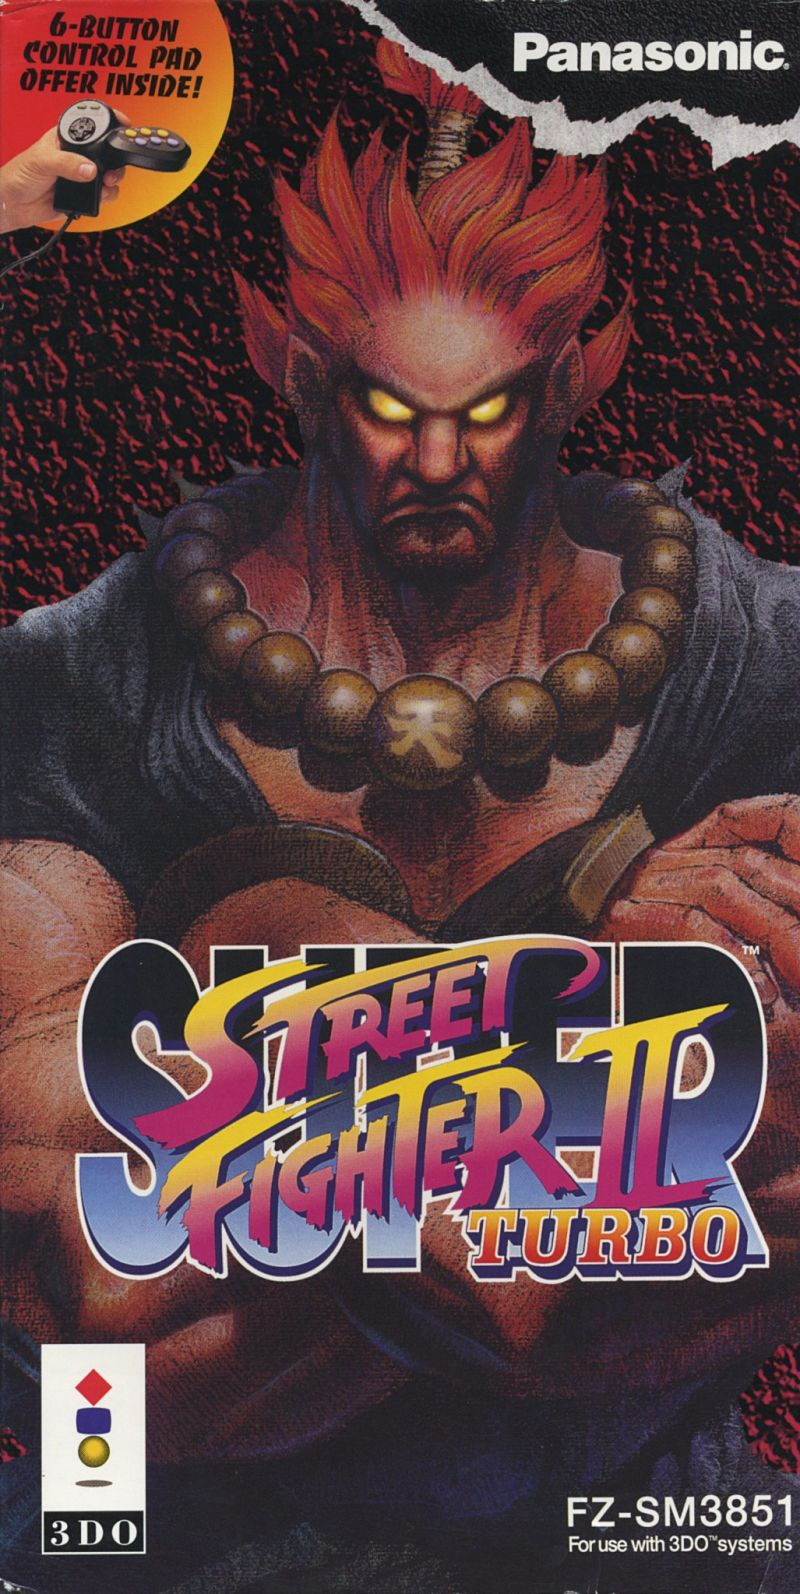 Super street fighter movie